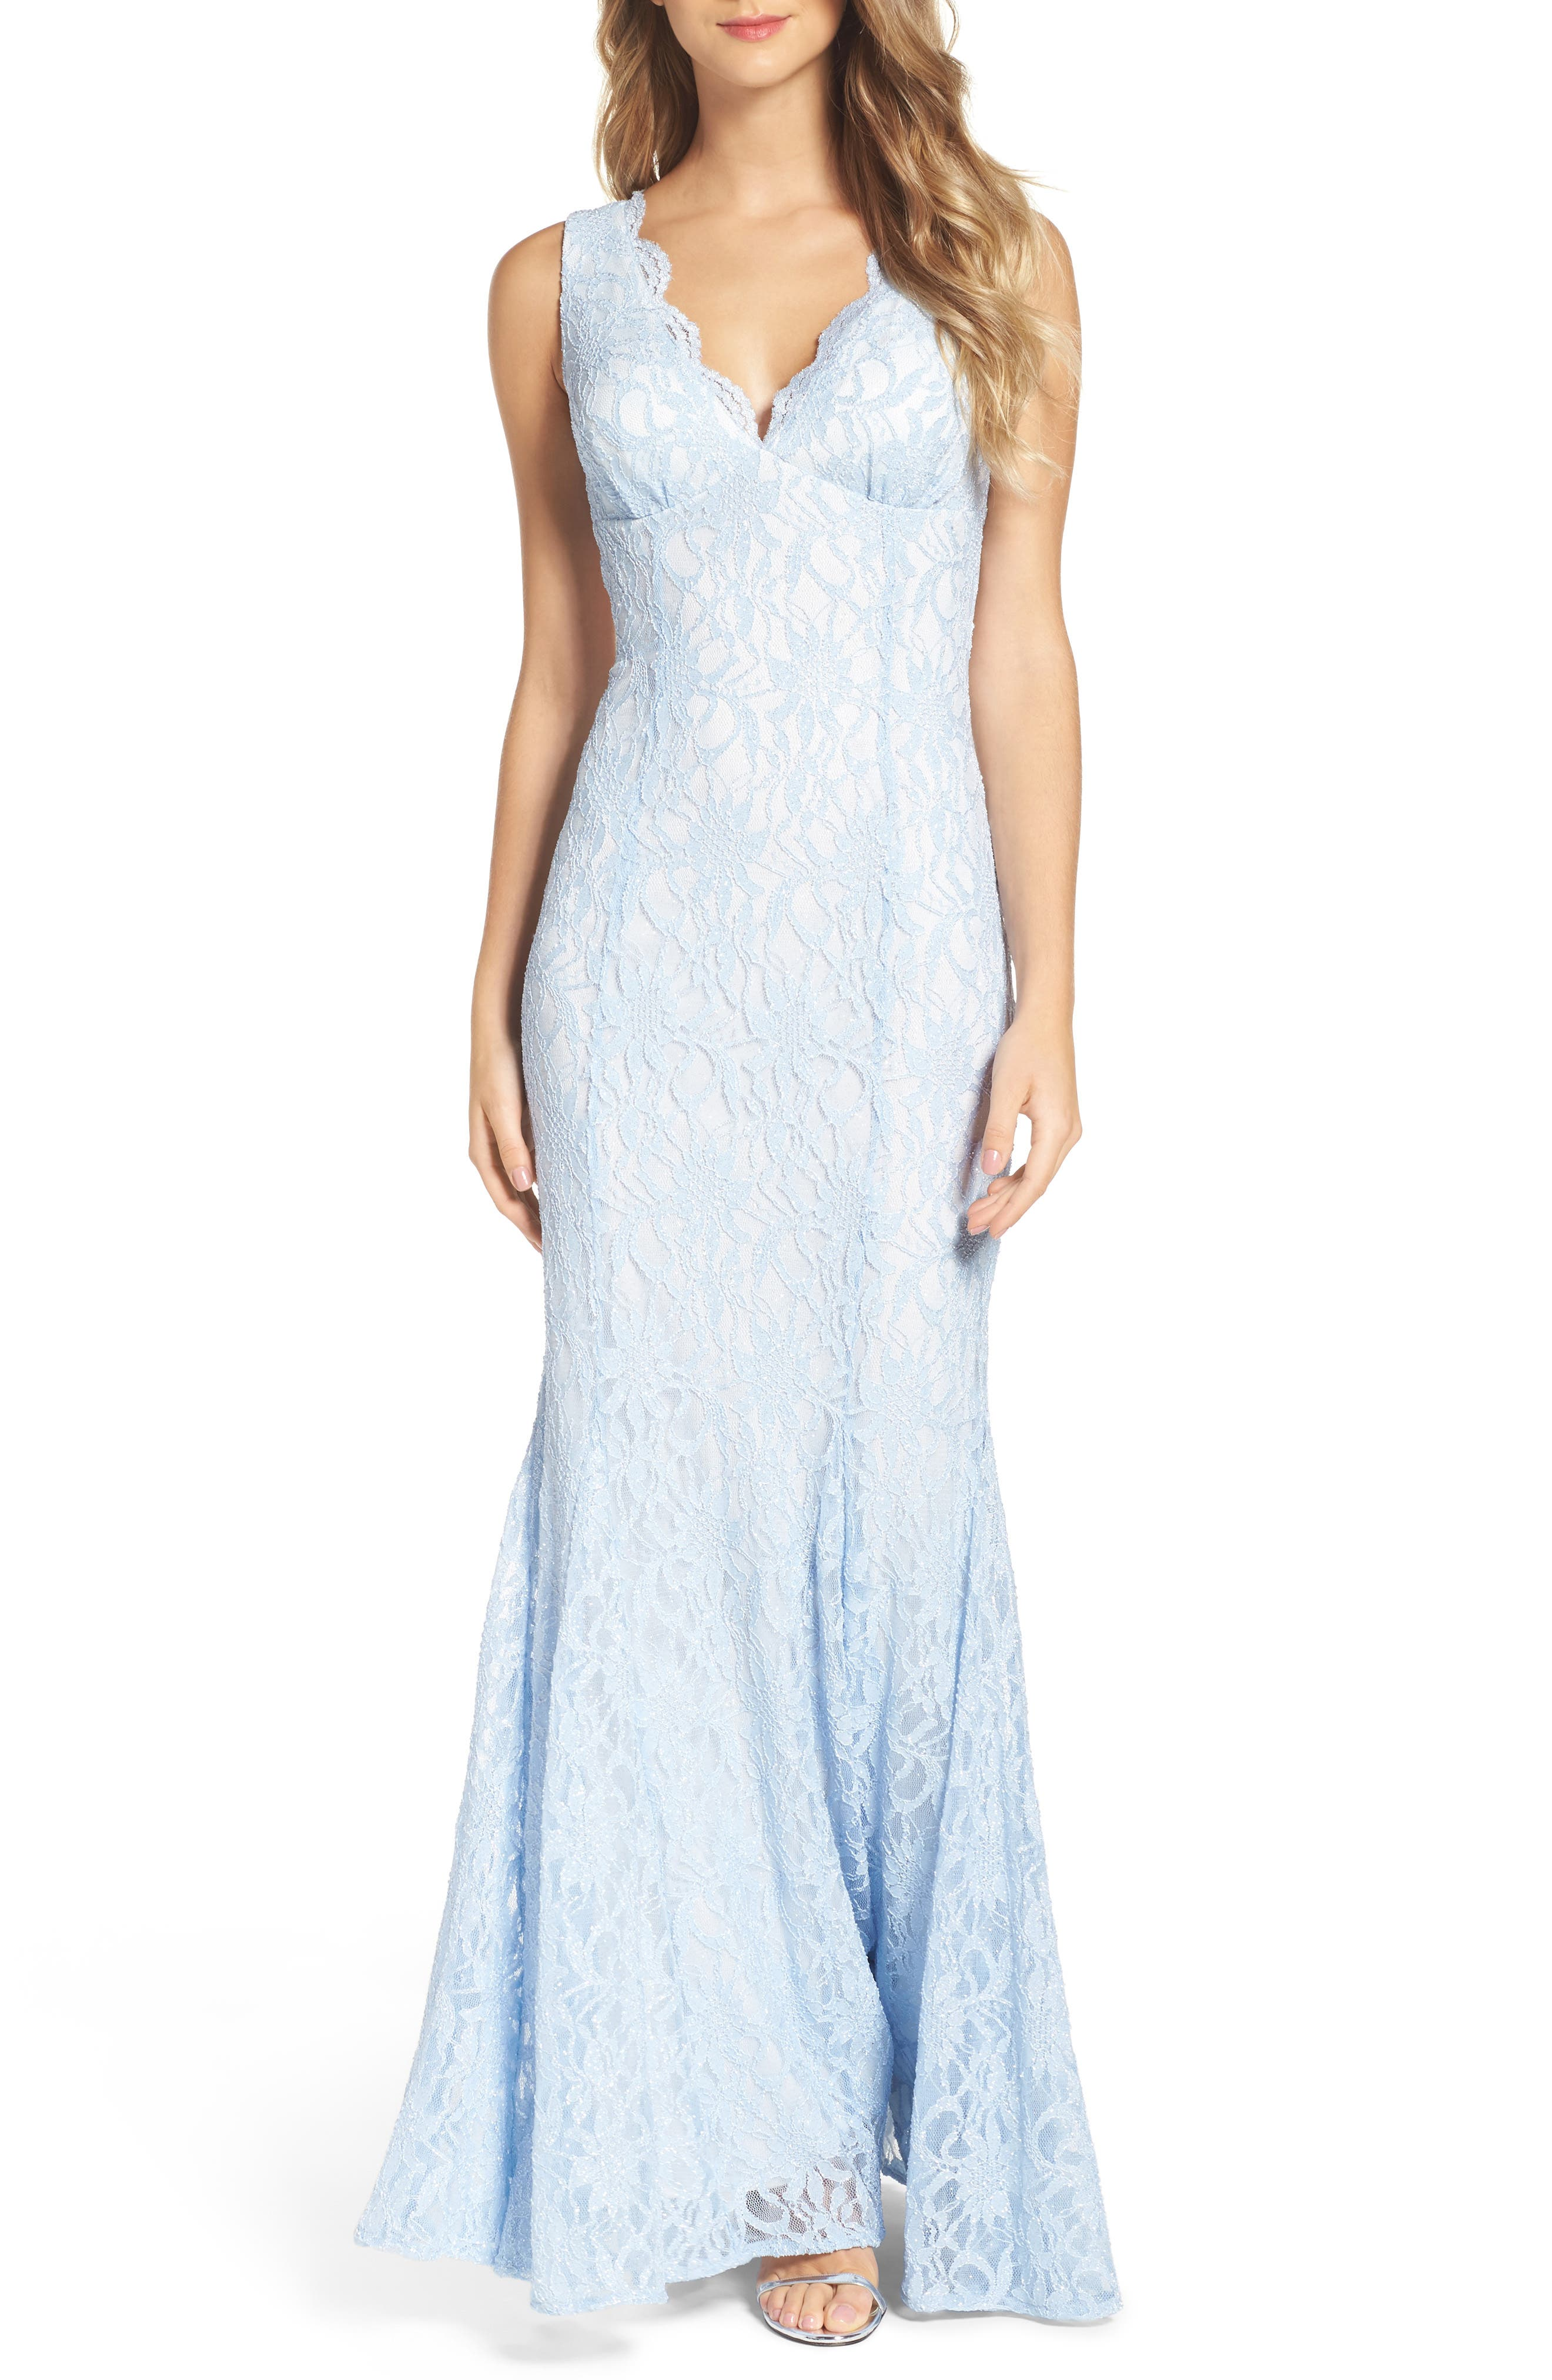 Main Image - Morgan & Co. Glitter Lace Gown